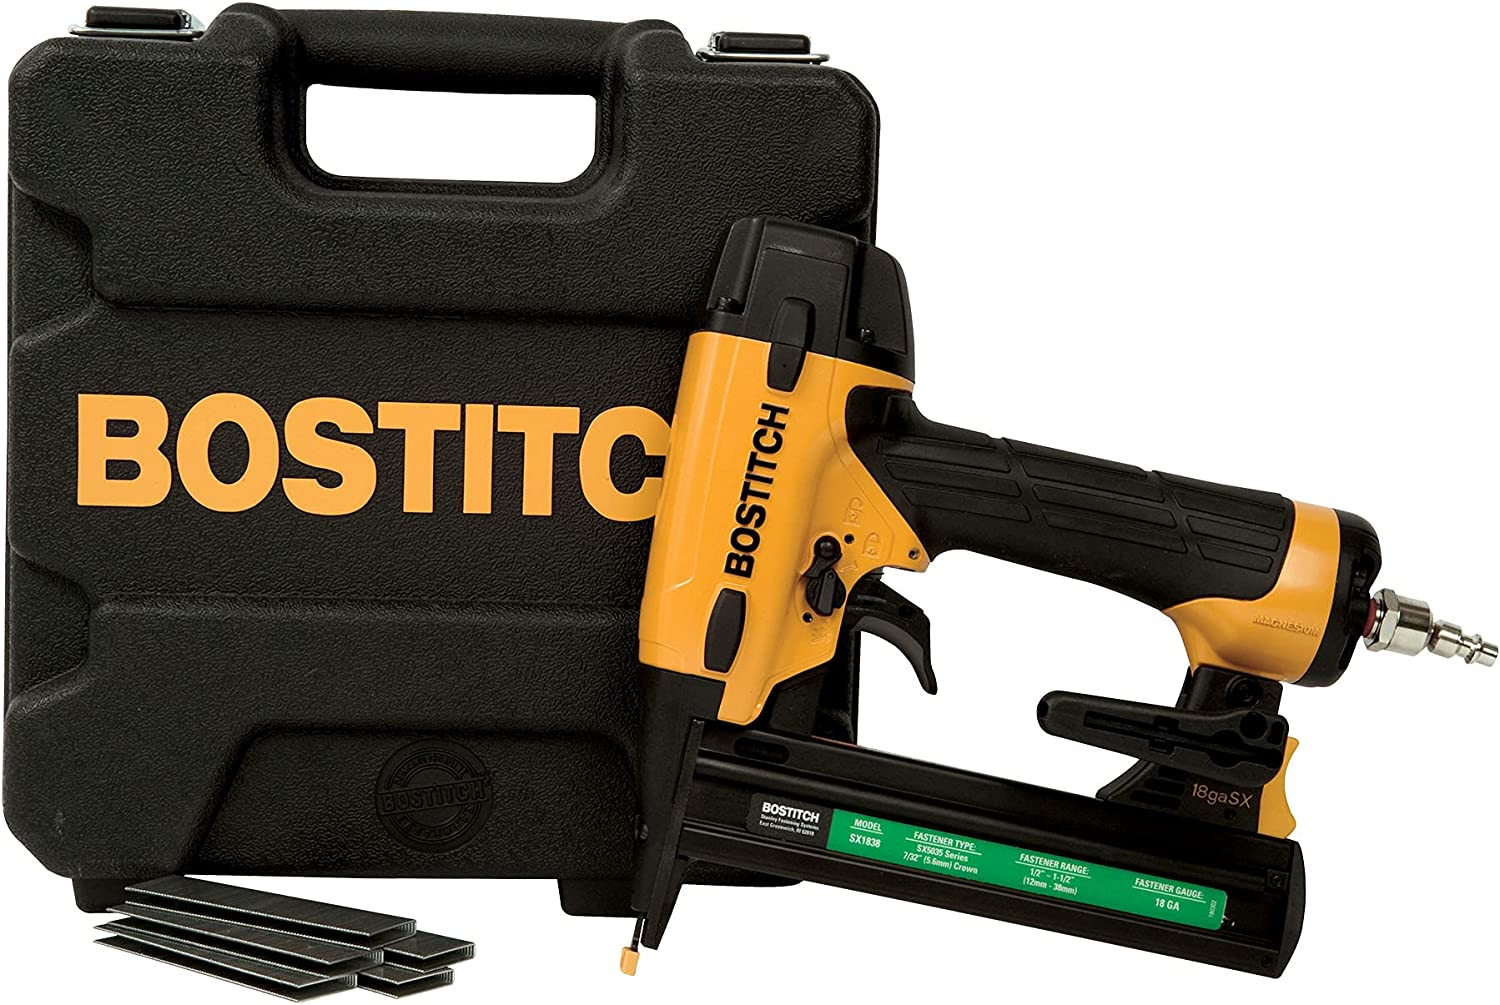 Bostitch BTFP71917 Finish Nailer 1/4 inch Air Fitting